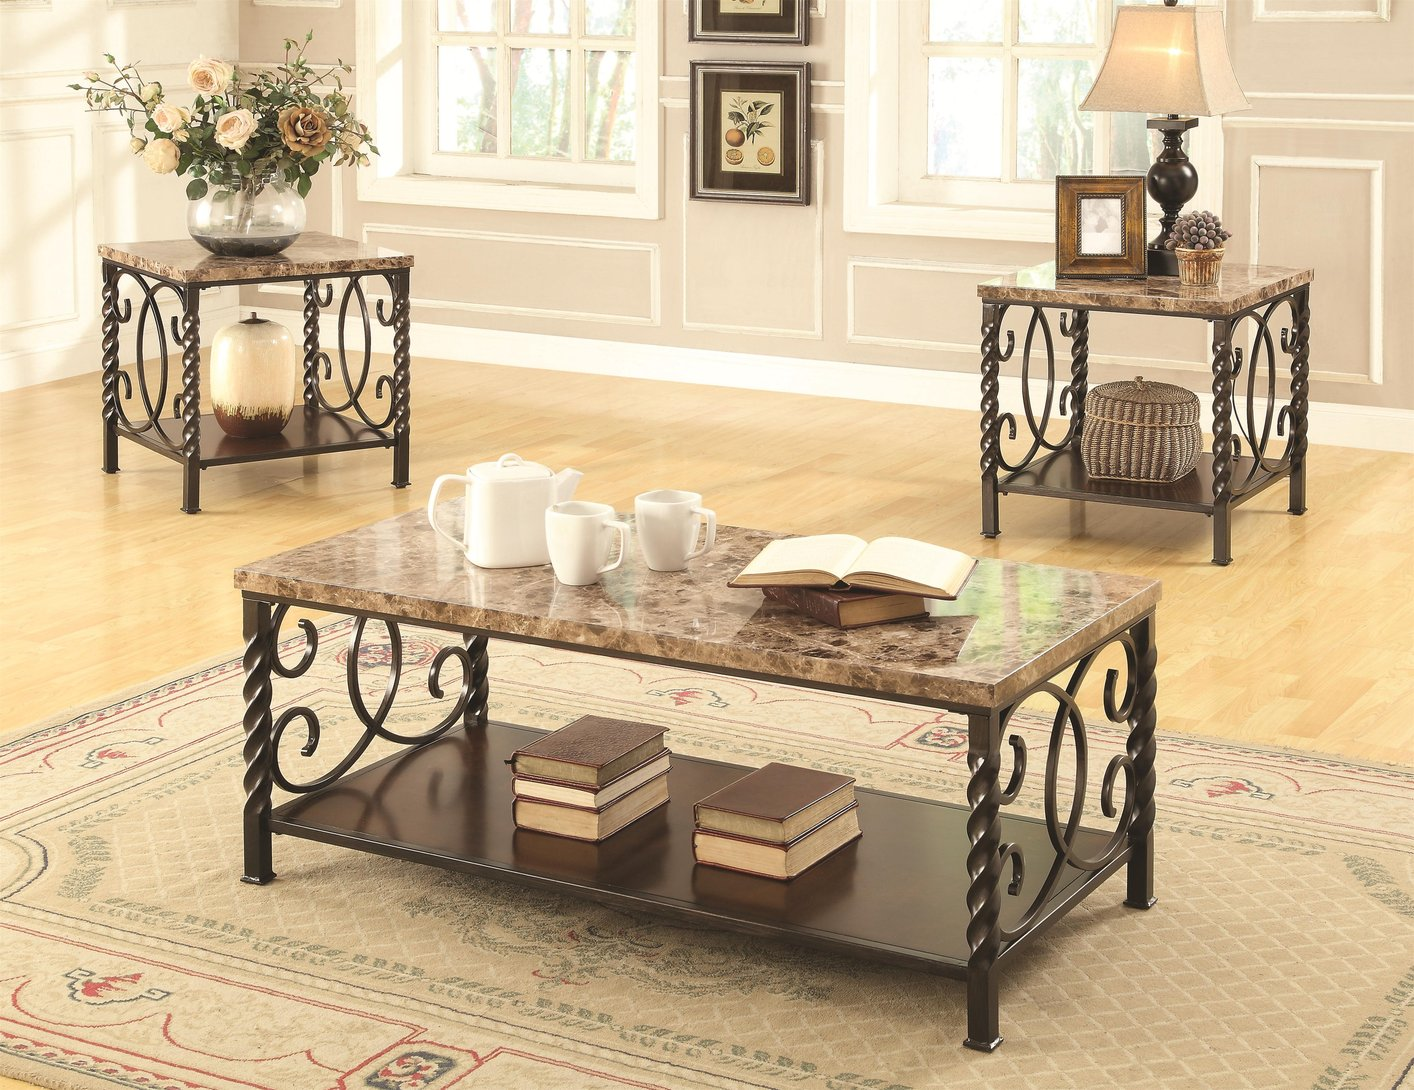 Coaster Lockhart 701695 Brown Marble Coffee Table Set Steal A Sofa Furniture Outlet Los Angeles Ca